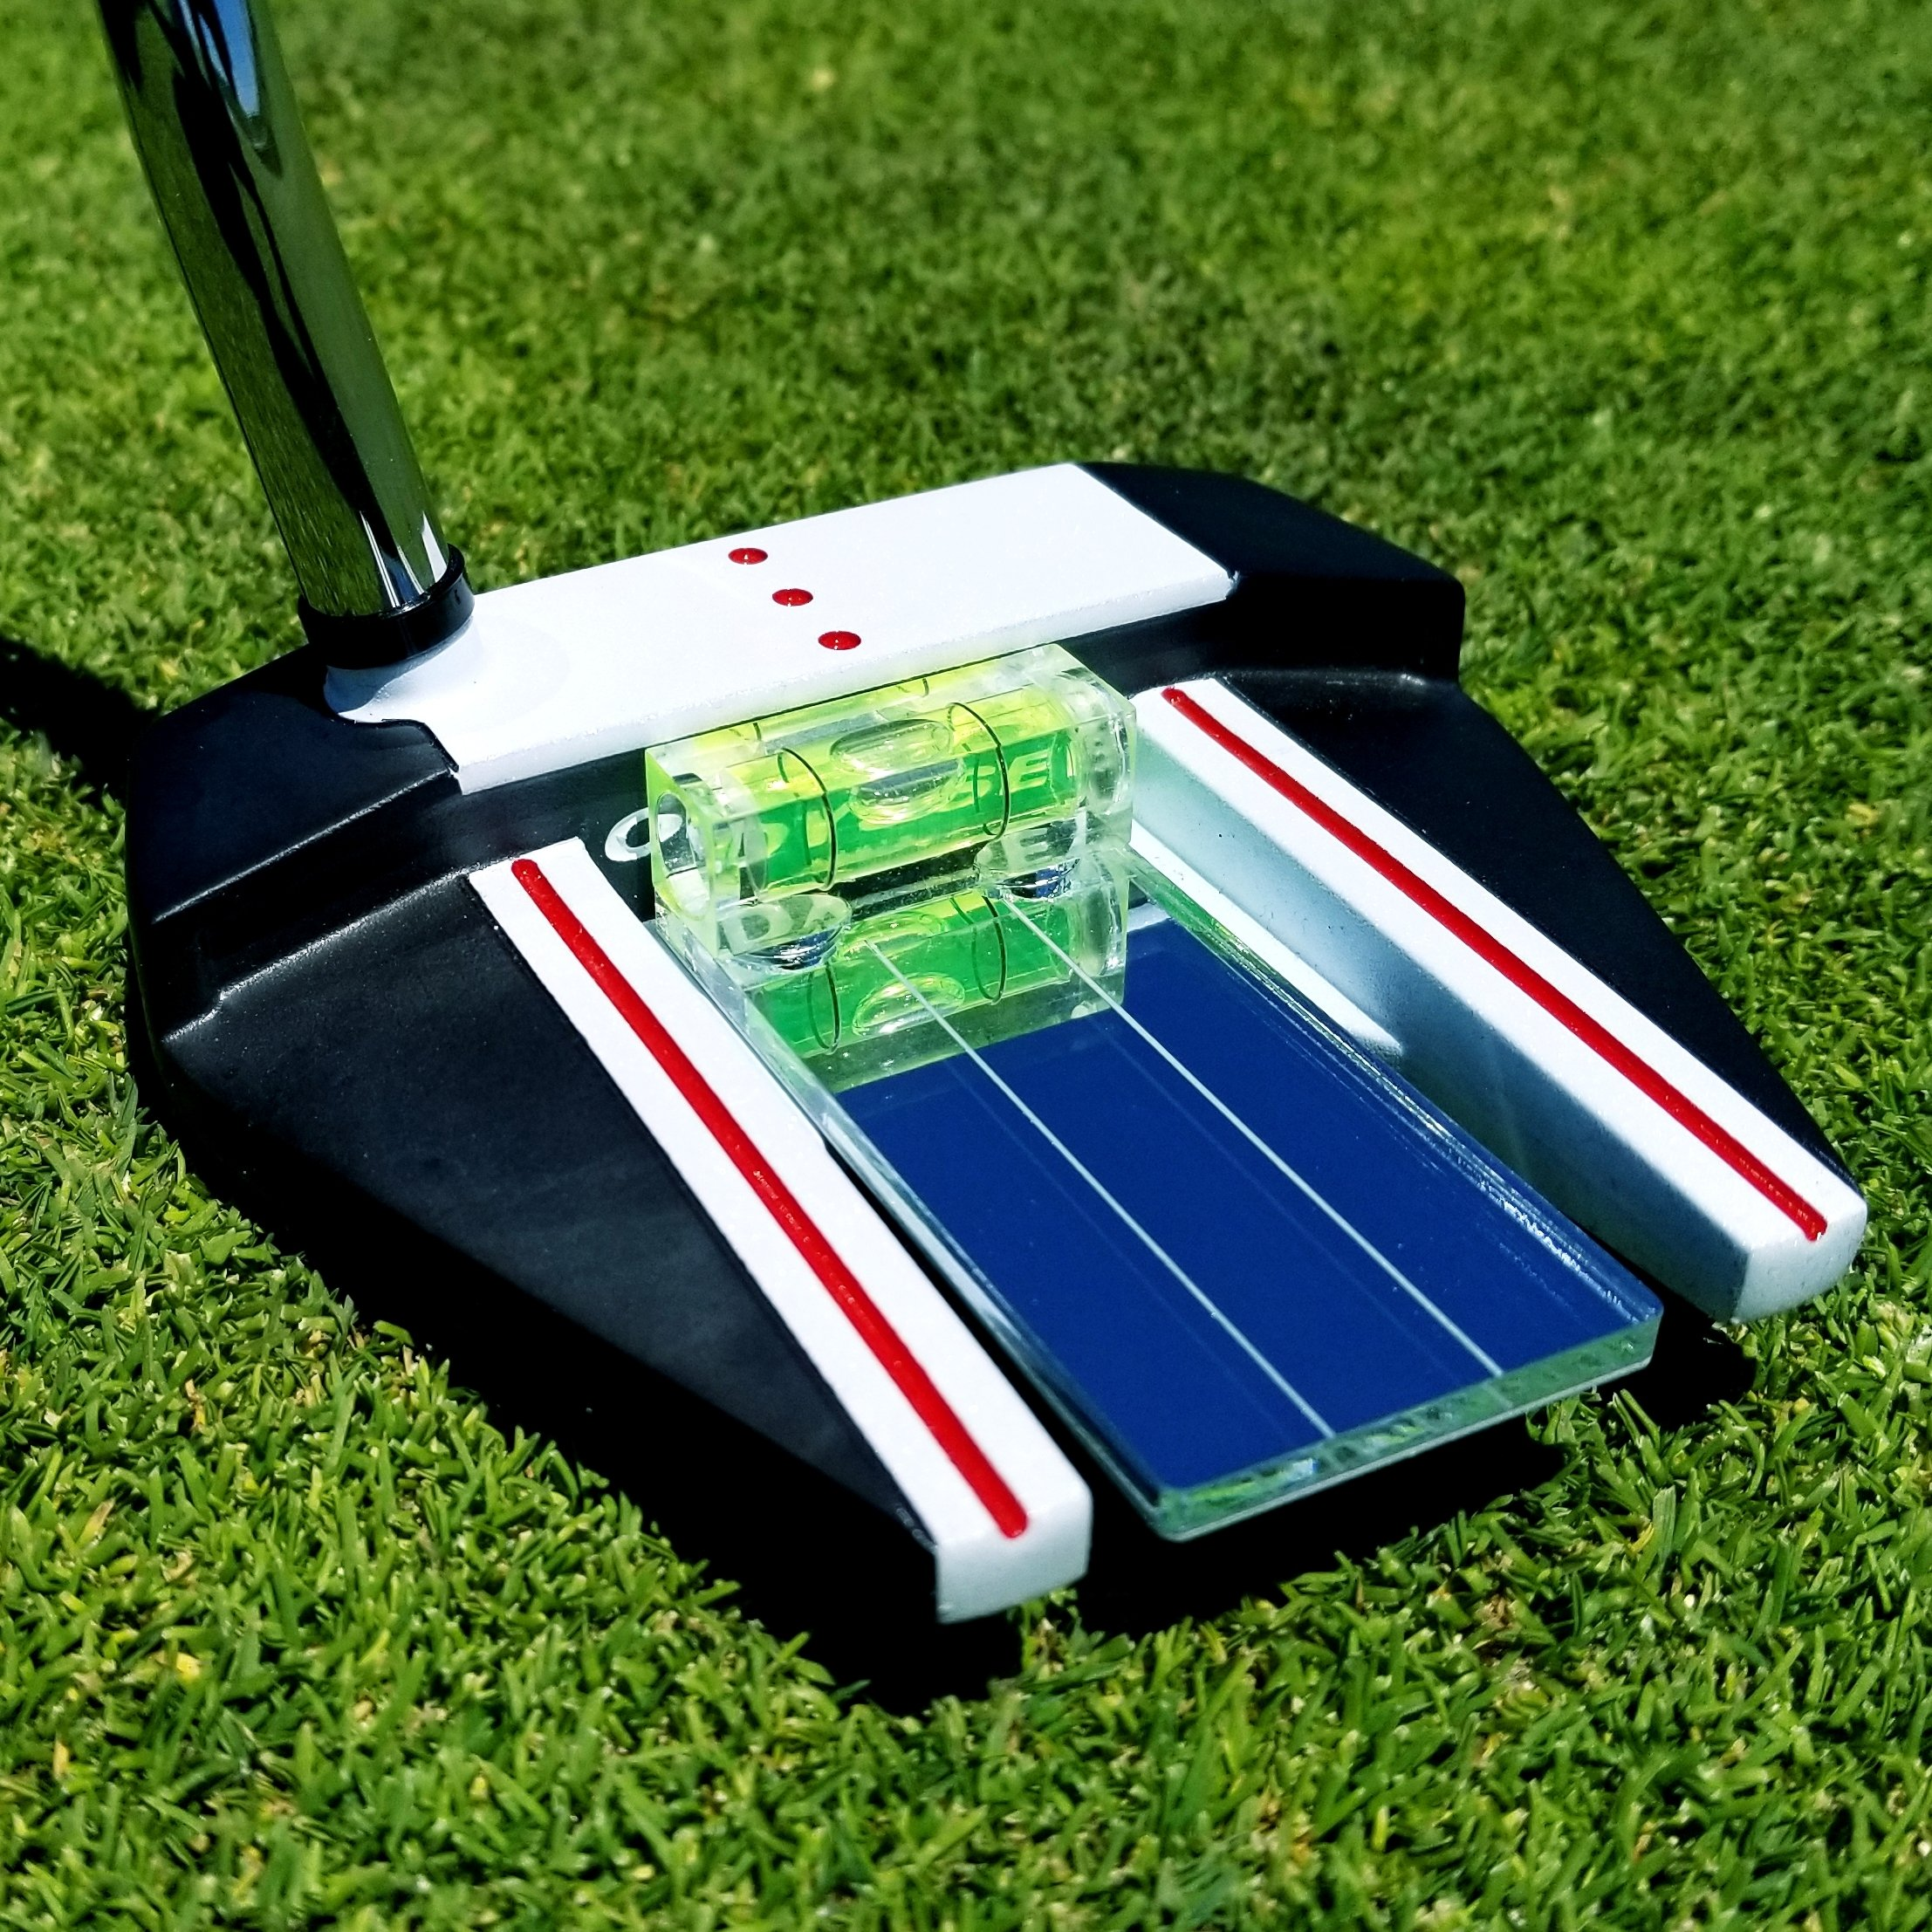 Eye Putt Pro Training Aid Putting Alignment Mirror - Position Your Eyes Over the Golf Ball In 2 Simple Steps